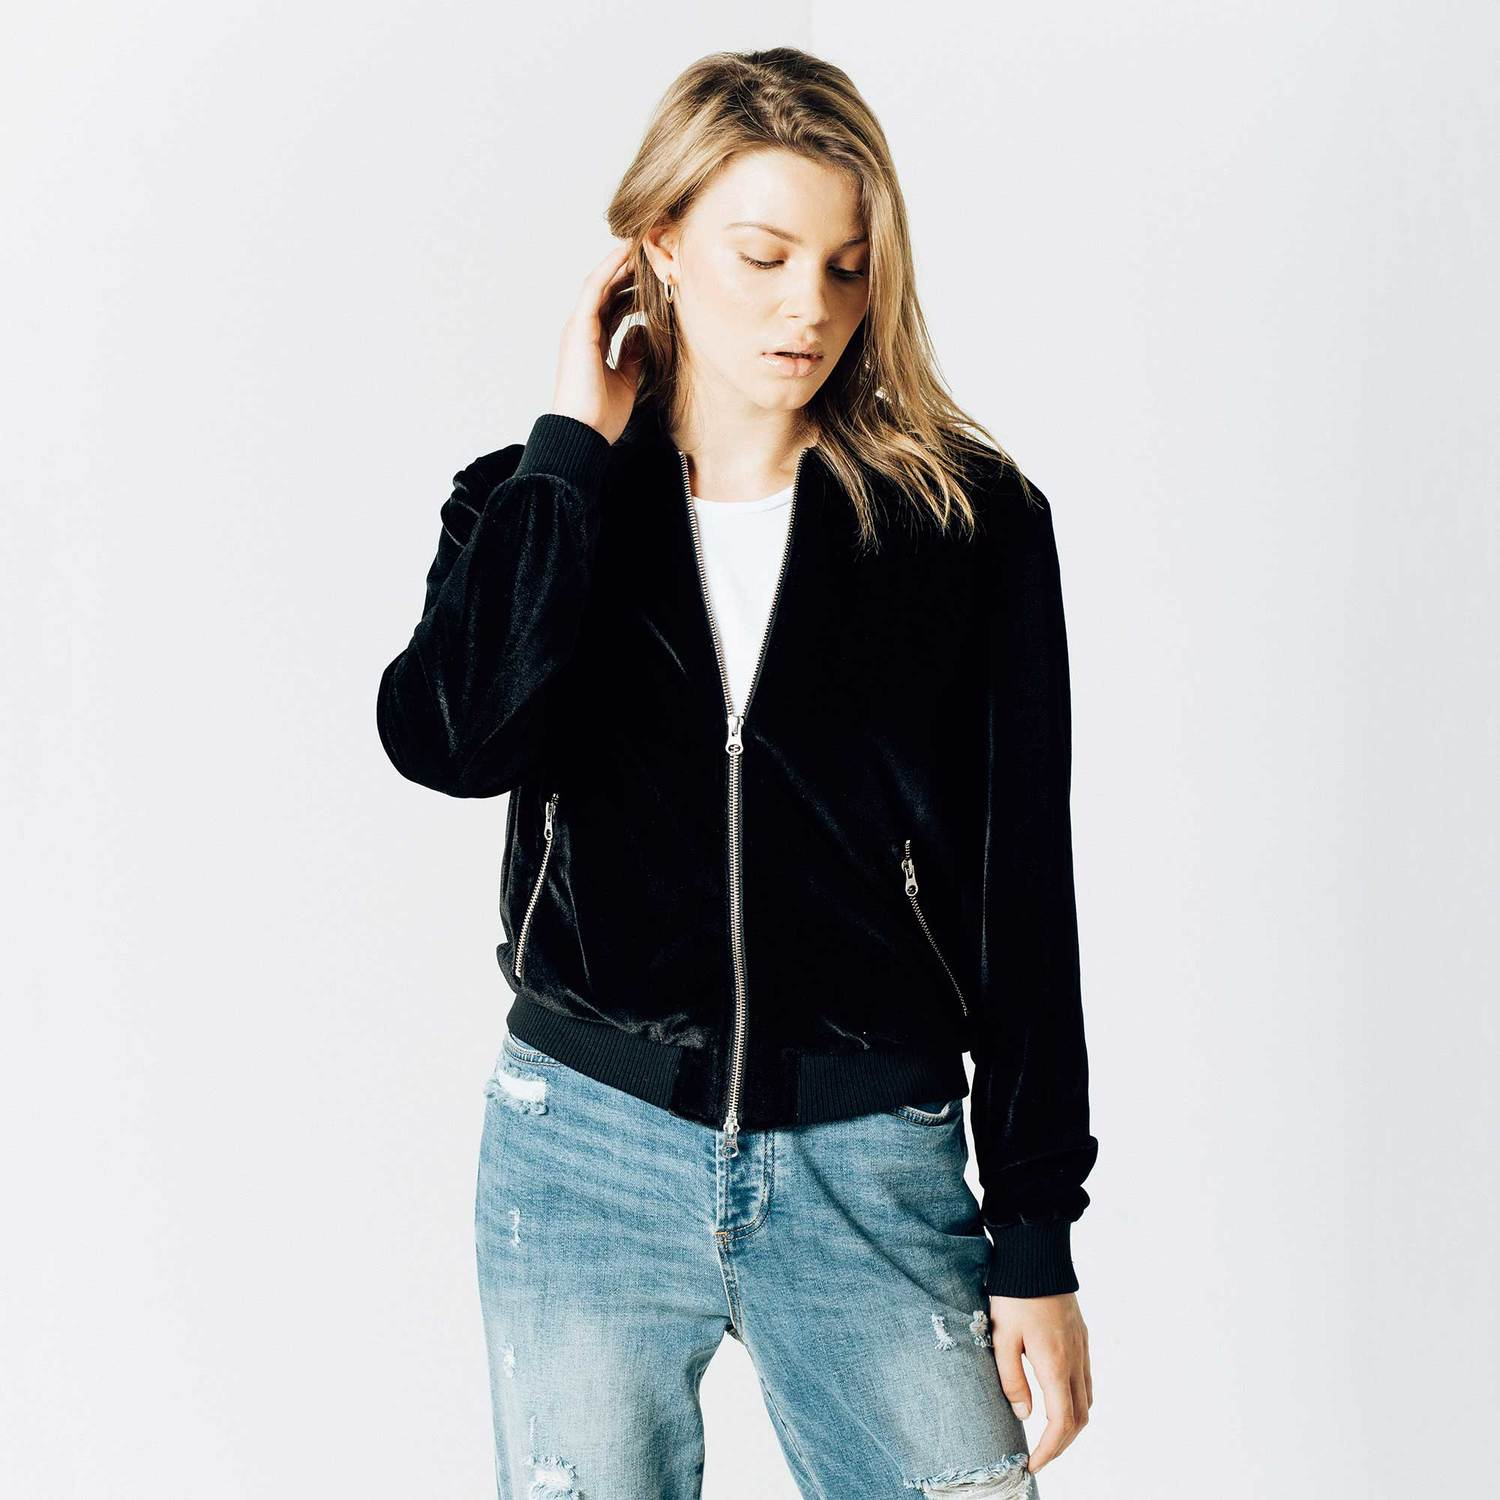 Womens Velvet Bomber Jacket In Black $120 | DSTLD